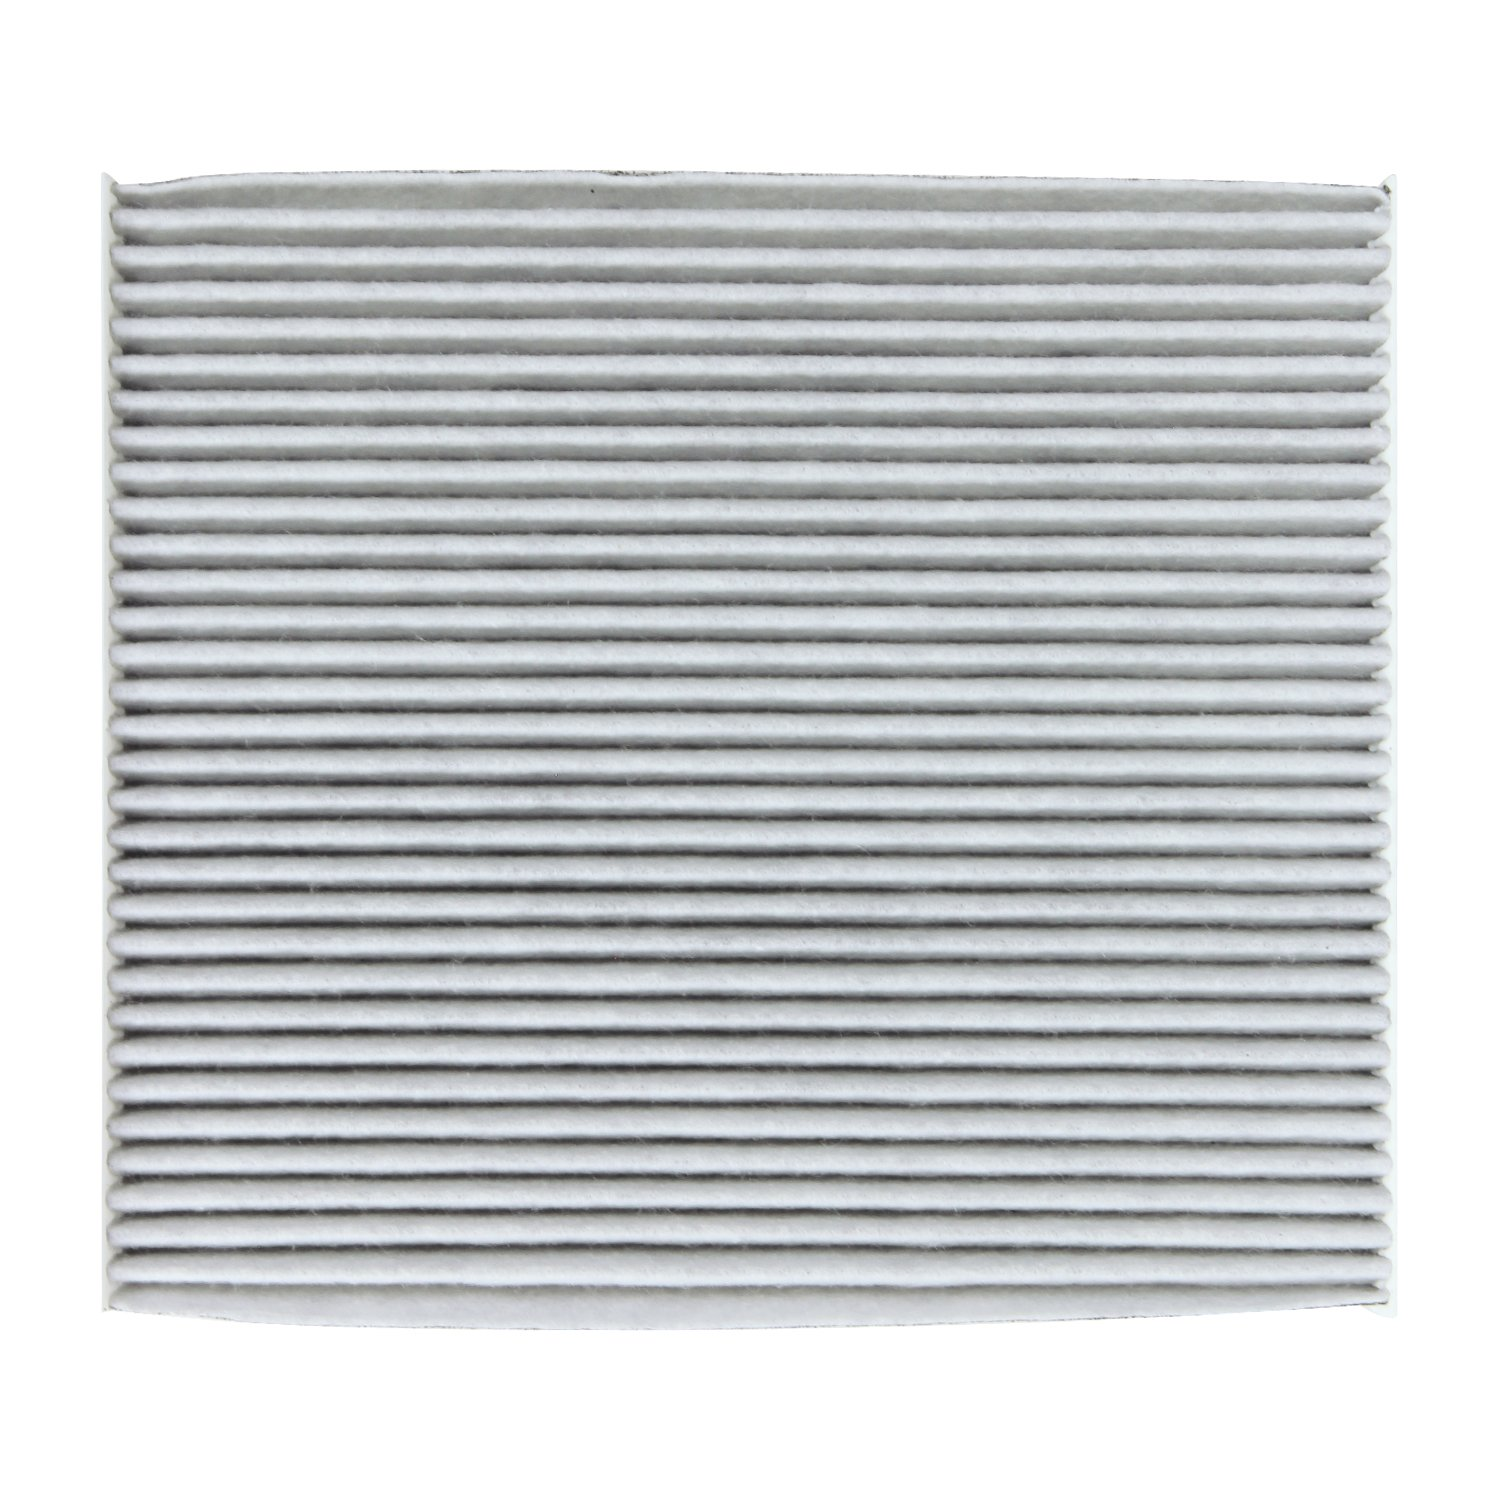 Tyc 800177p Replacement Cabin Air Filter For Nissan 2014 Altima Fuel Automotive